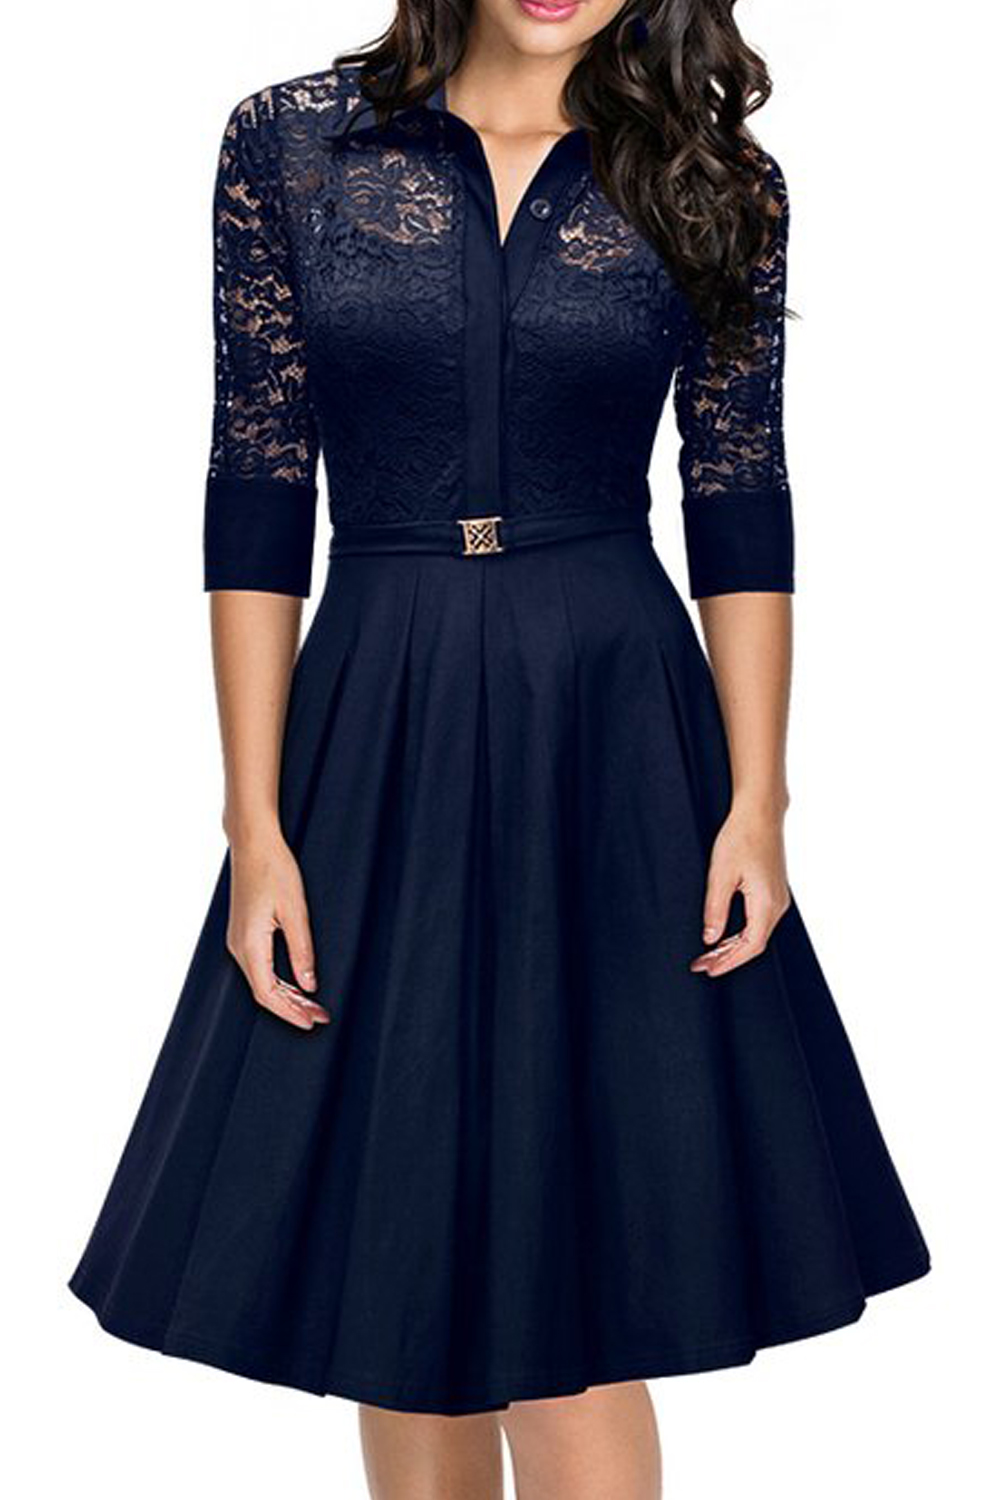 Amazing A Let Me Cheer You Up With An Offering Of Shirt Dresses Im A Devoted Fan, As